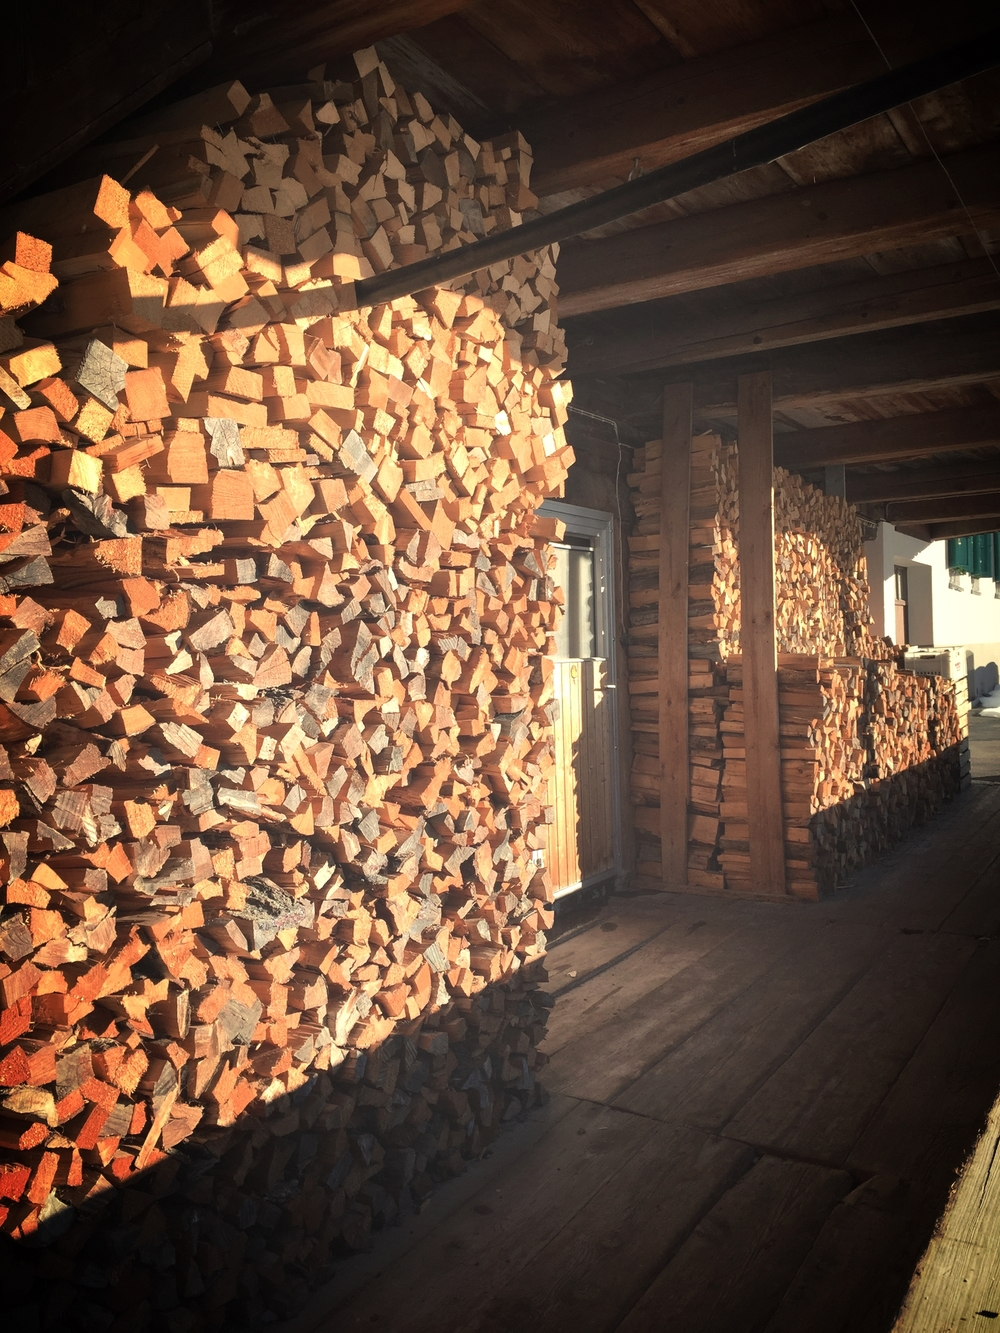 I think my wood stack at home could use some Swiss organizing.